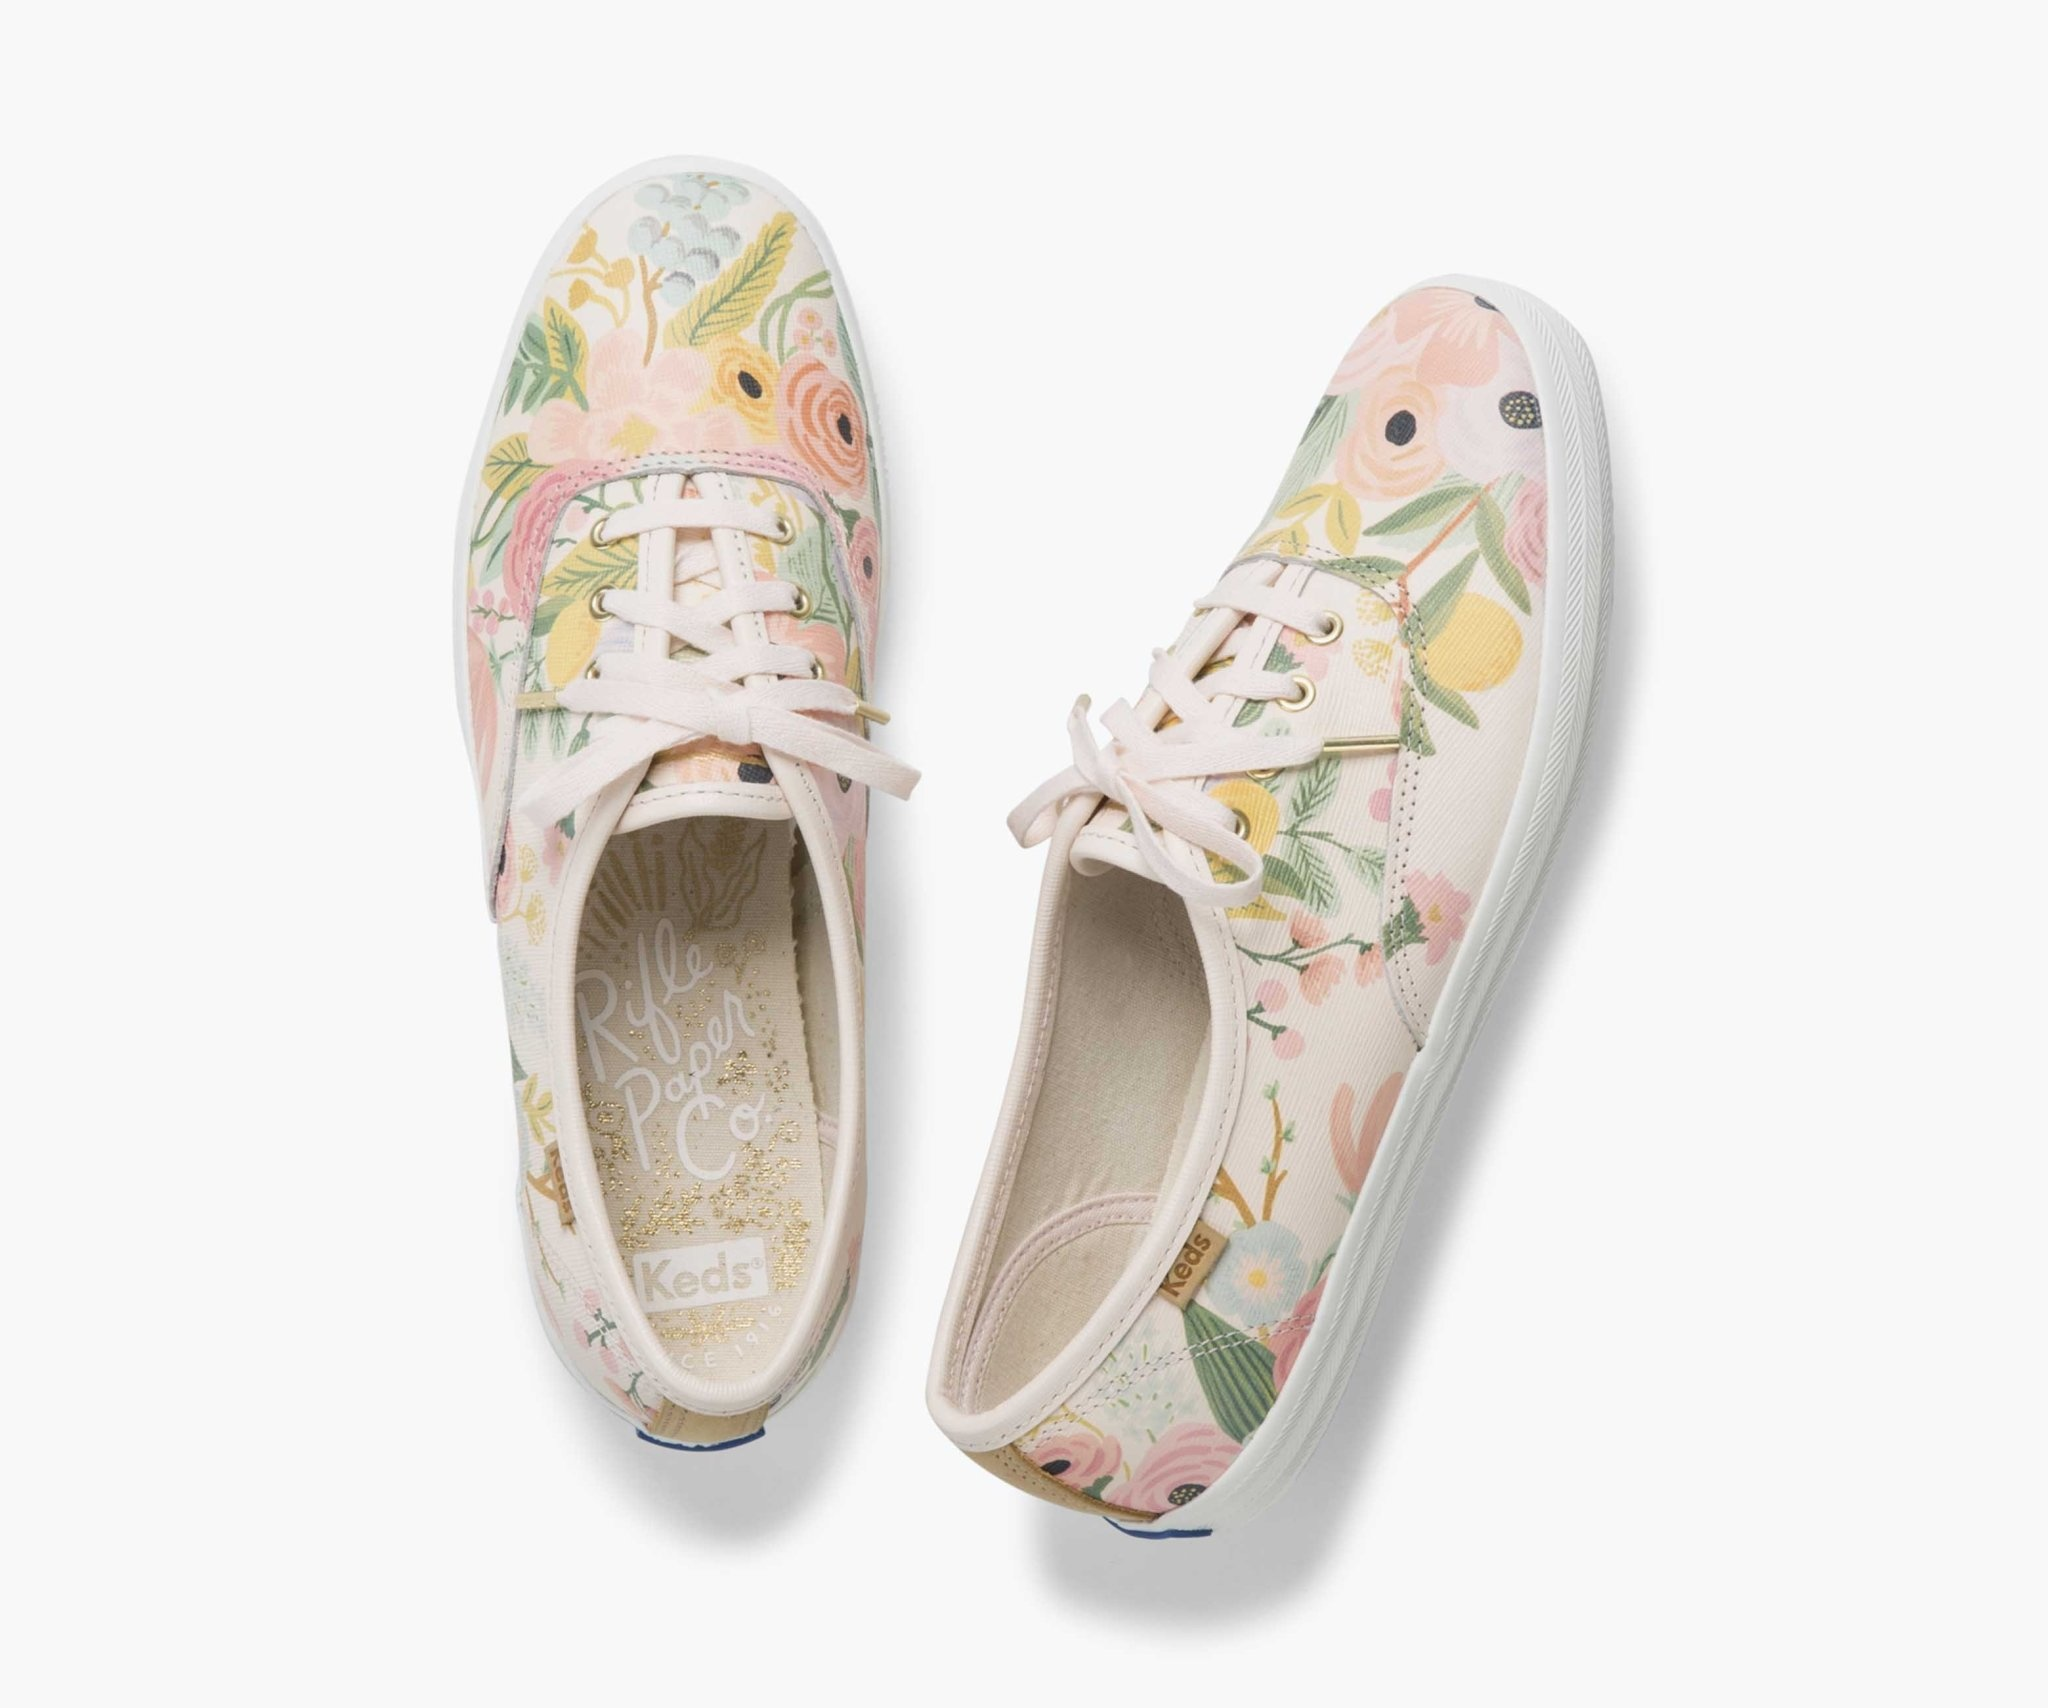 KEDS Adult + Rifle Paper Co. - Leather Champion / Garden Party - Pink